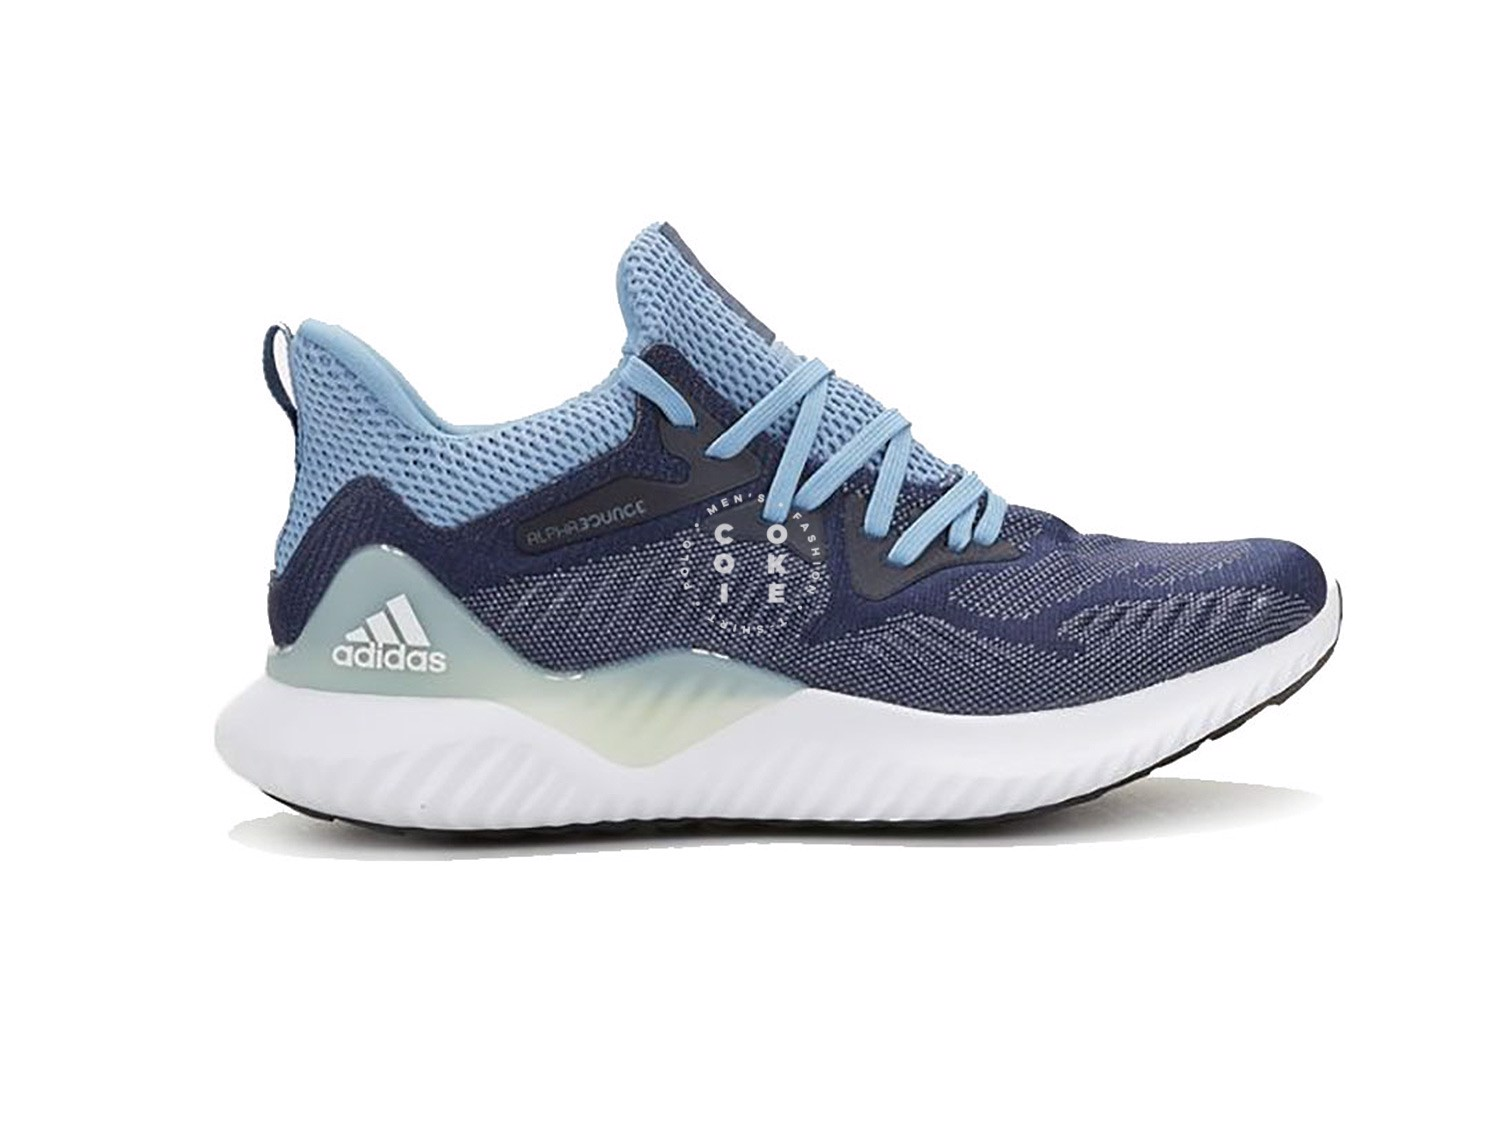 Giày adidas Alphabounce Beyond Shoes - Blue - DB0205